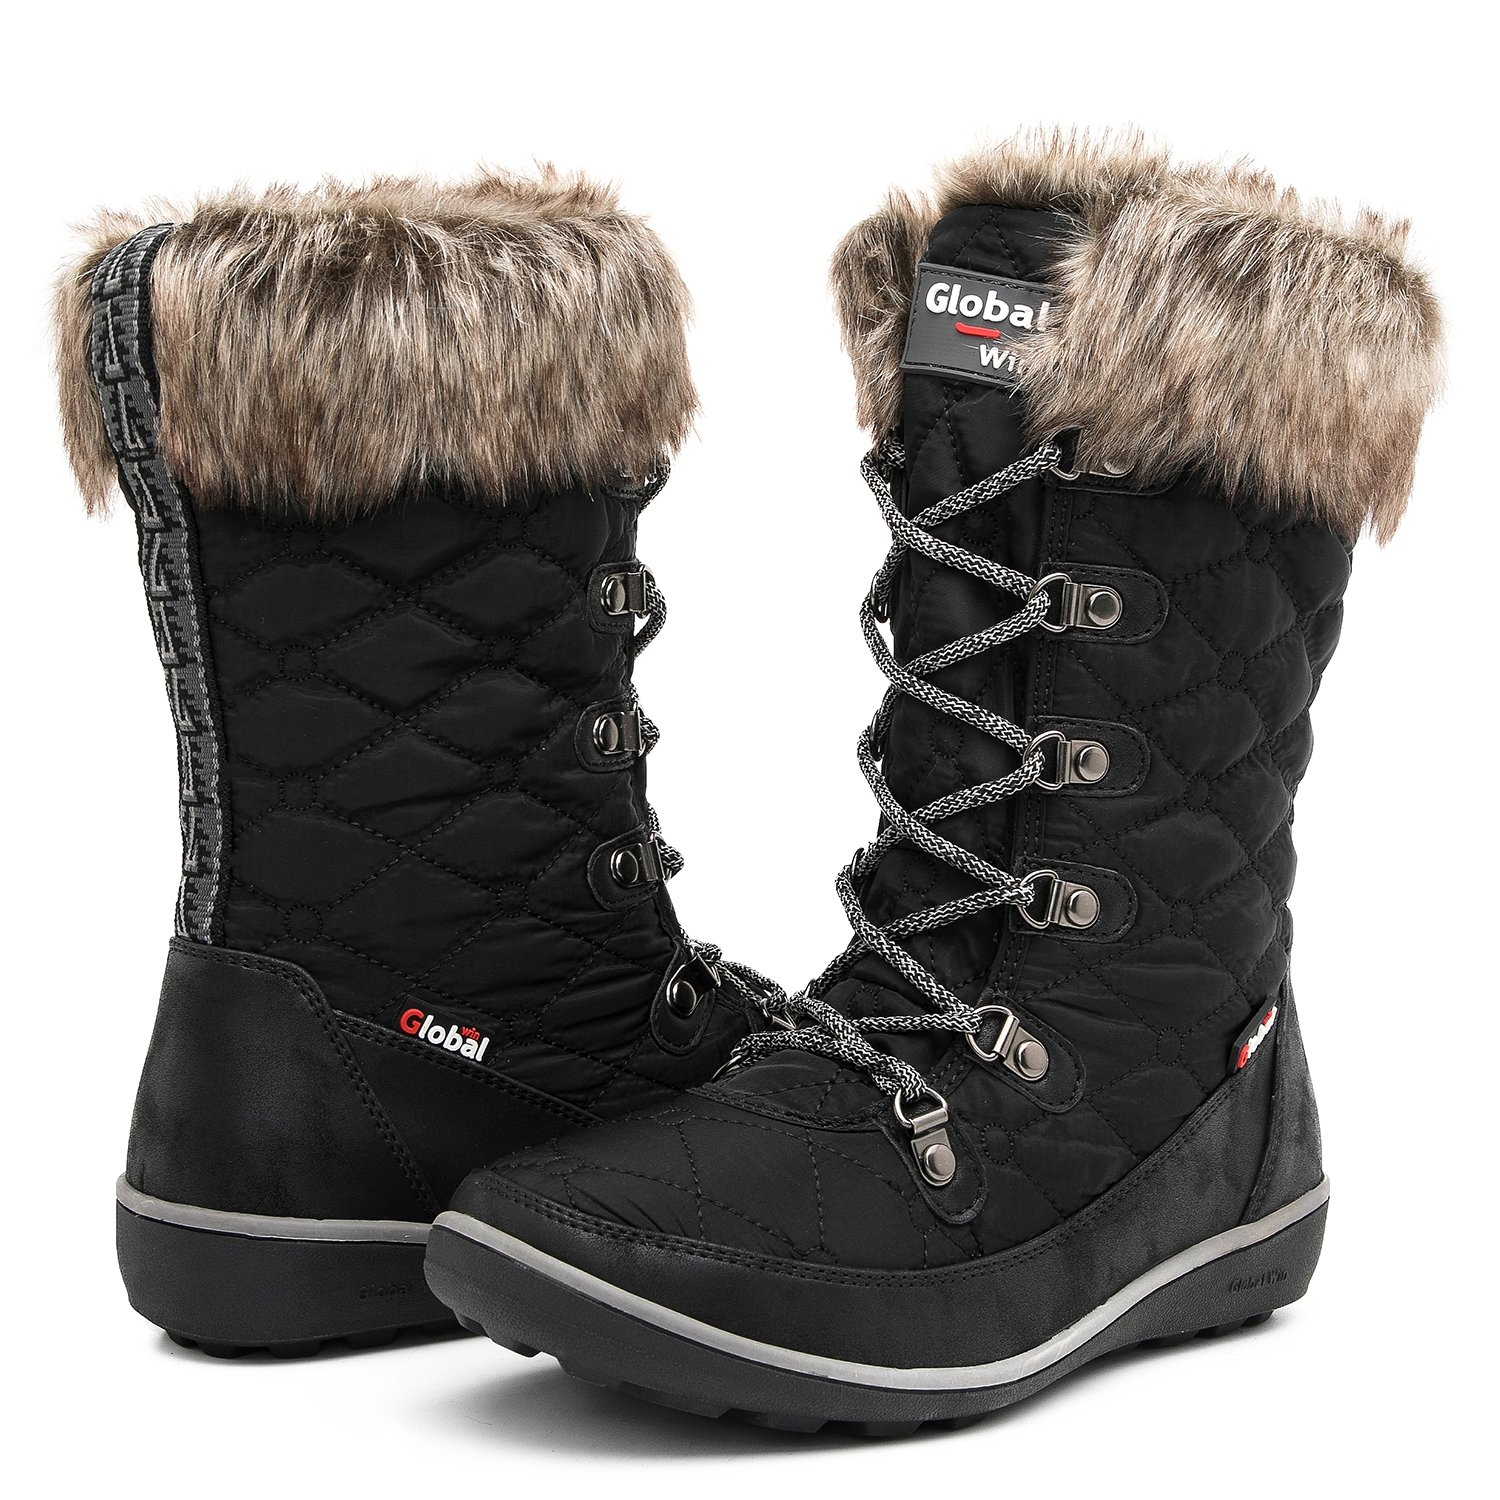 Globalwin Women's 1731 Winter Waterproof Snow Boots (10 D(M) US Women's, 1731Black)